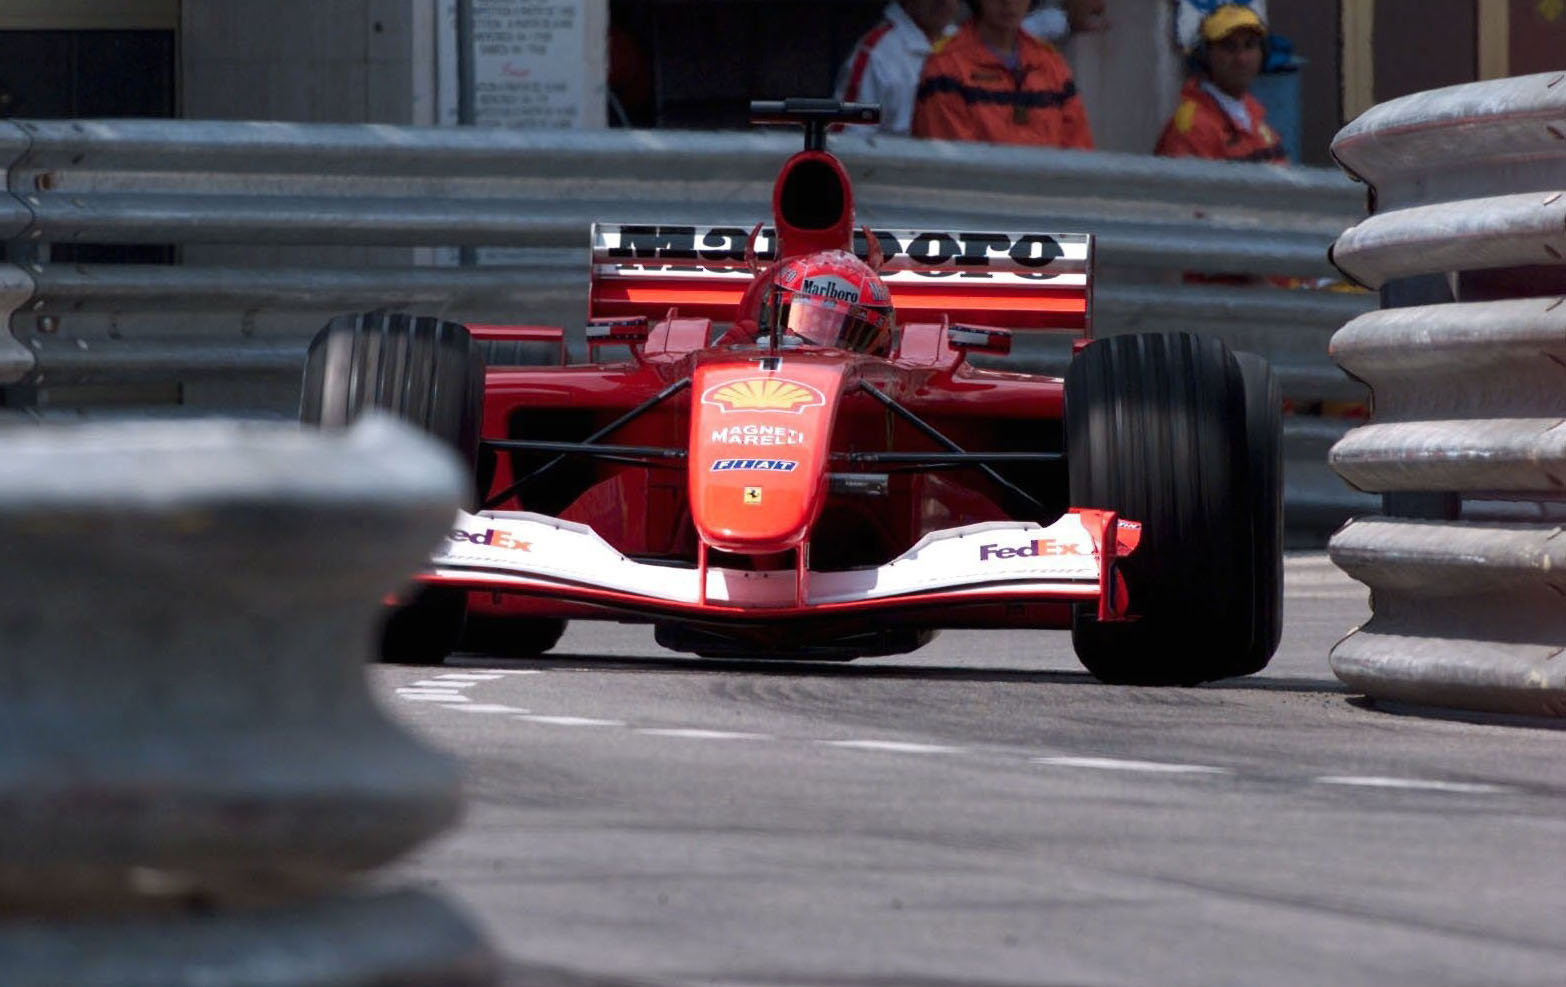 Michael Schumacher S Final Monaco Winning Ferrari Sells For 7 5 Million